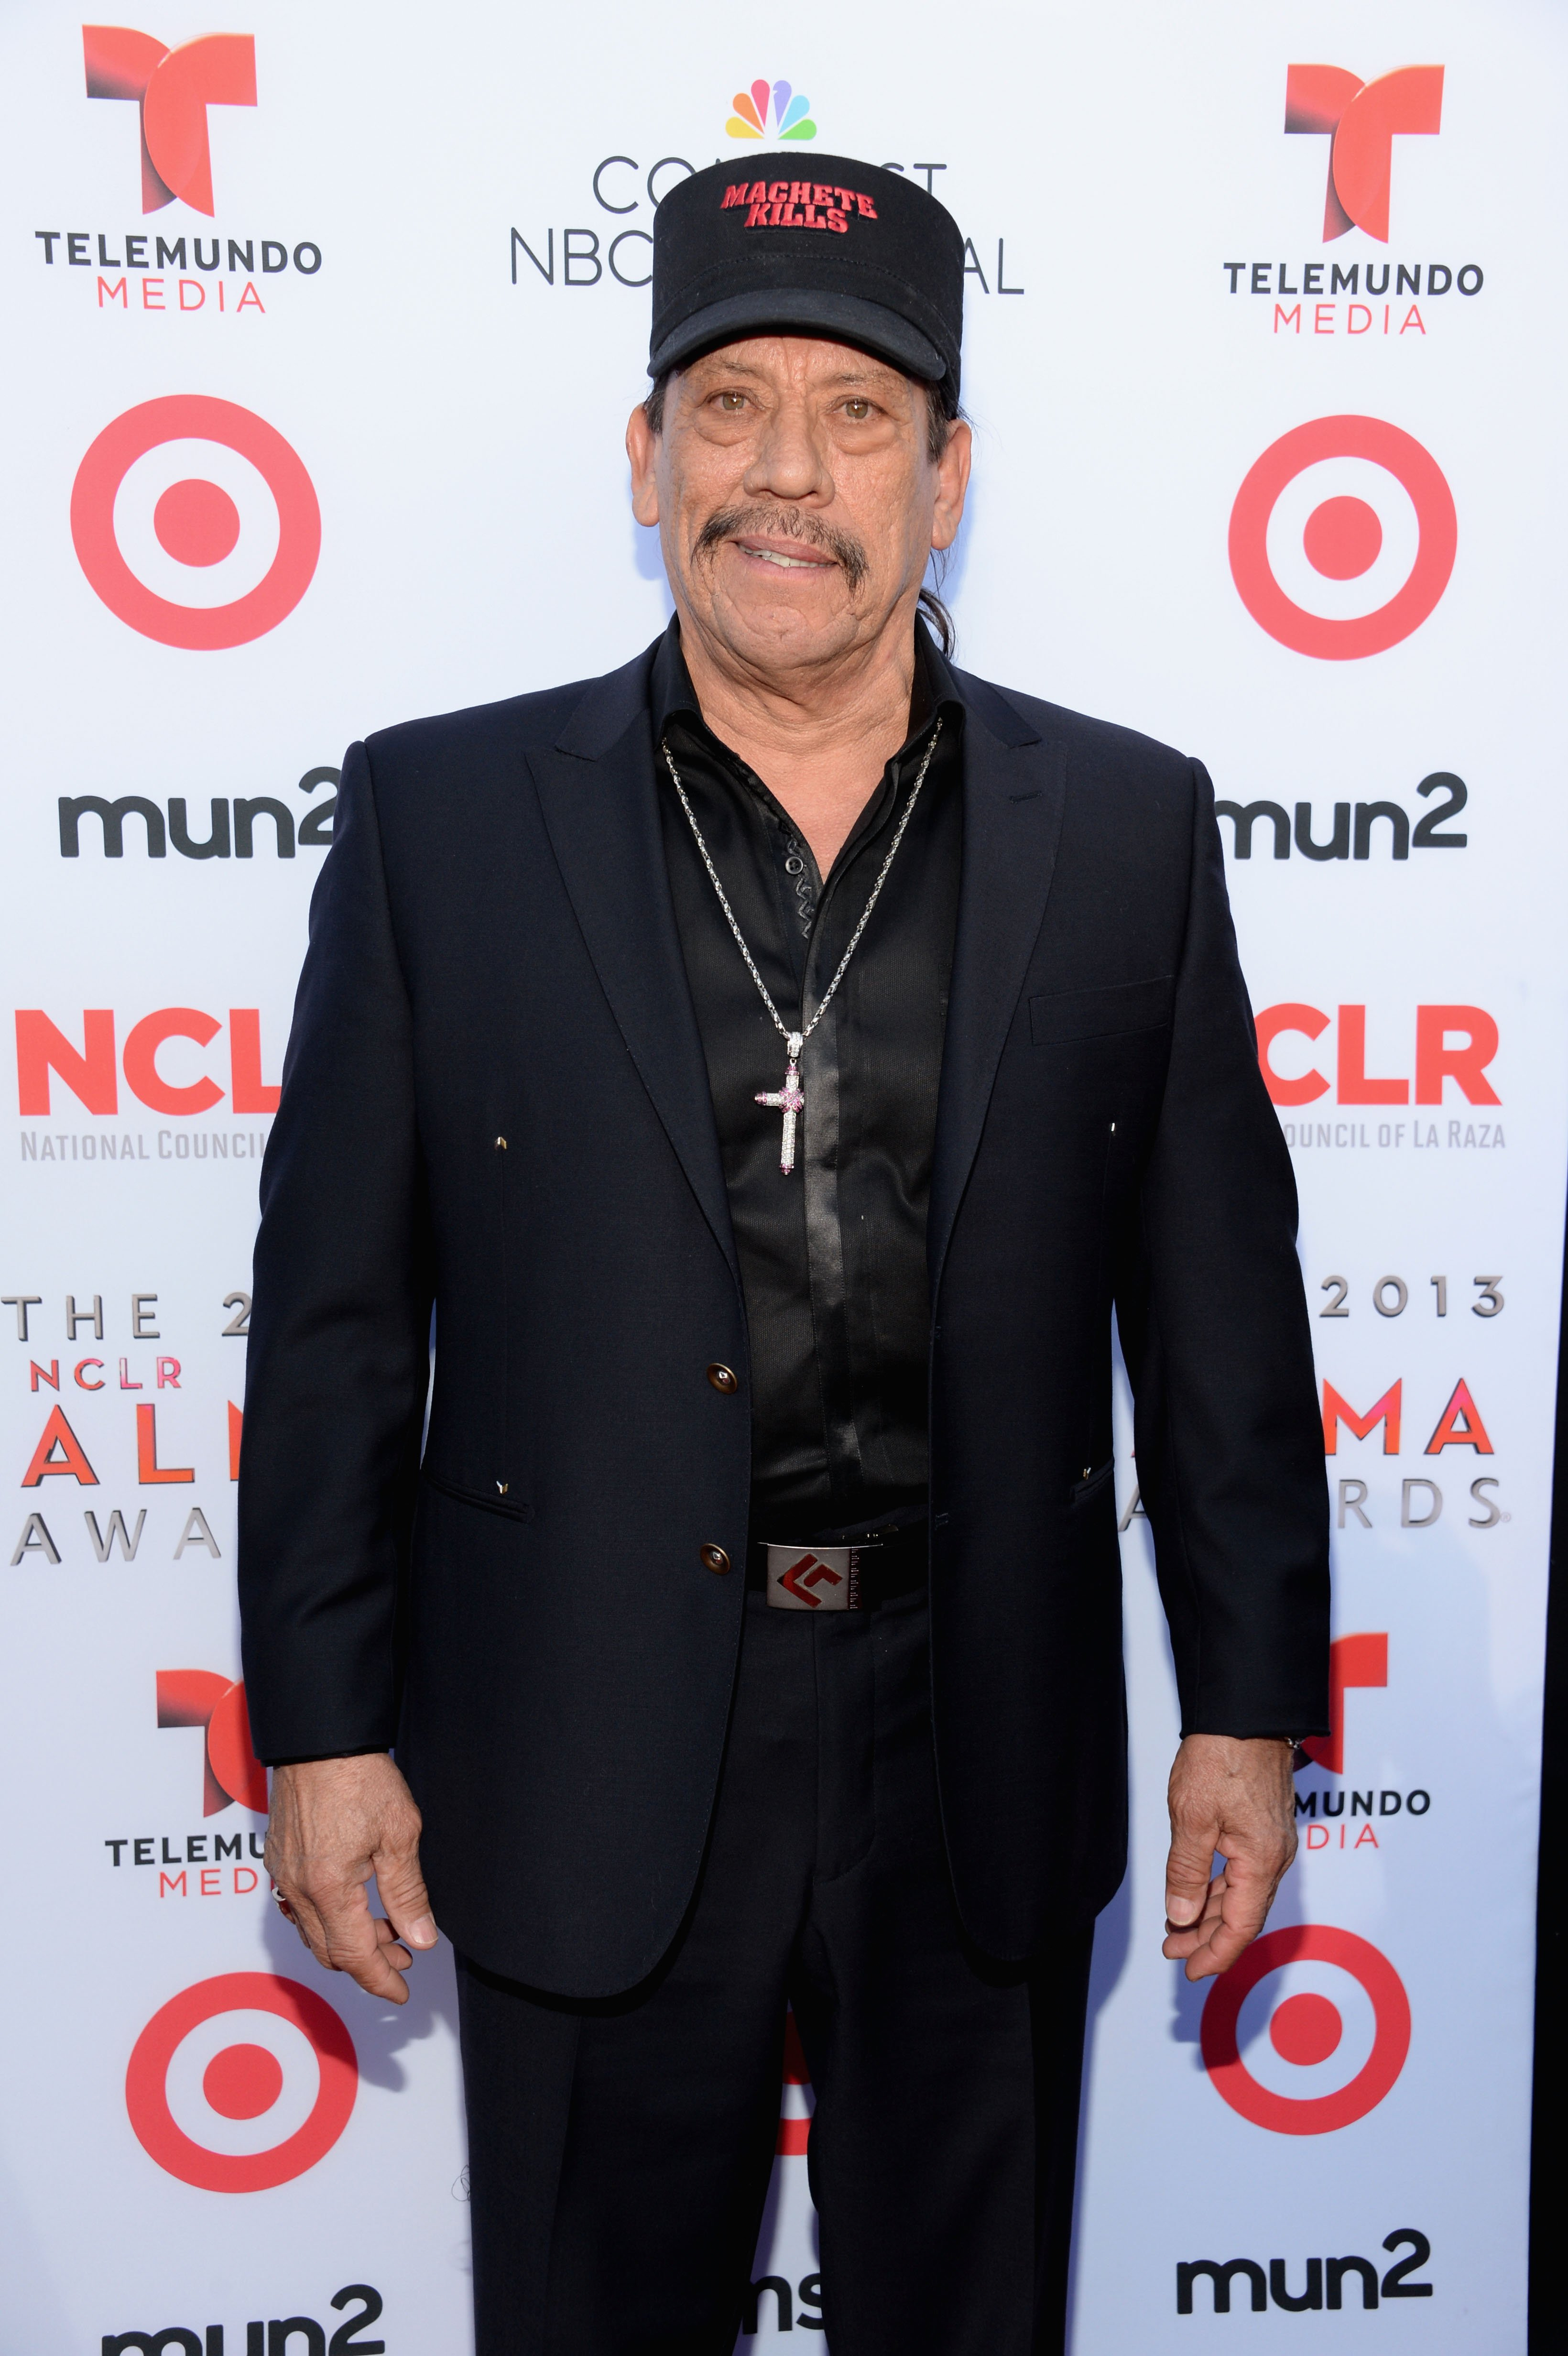 Danny Trejo at the 8th Annual Hollywood F.A.M.E Awards at Avalon on November 12, 2014 in California | Photo: Getty Images